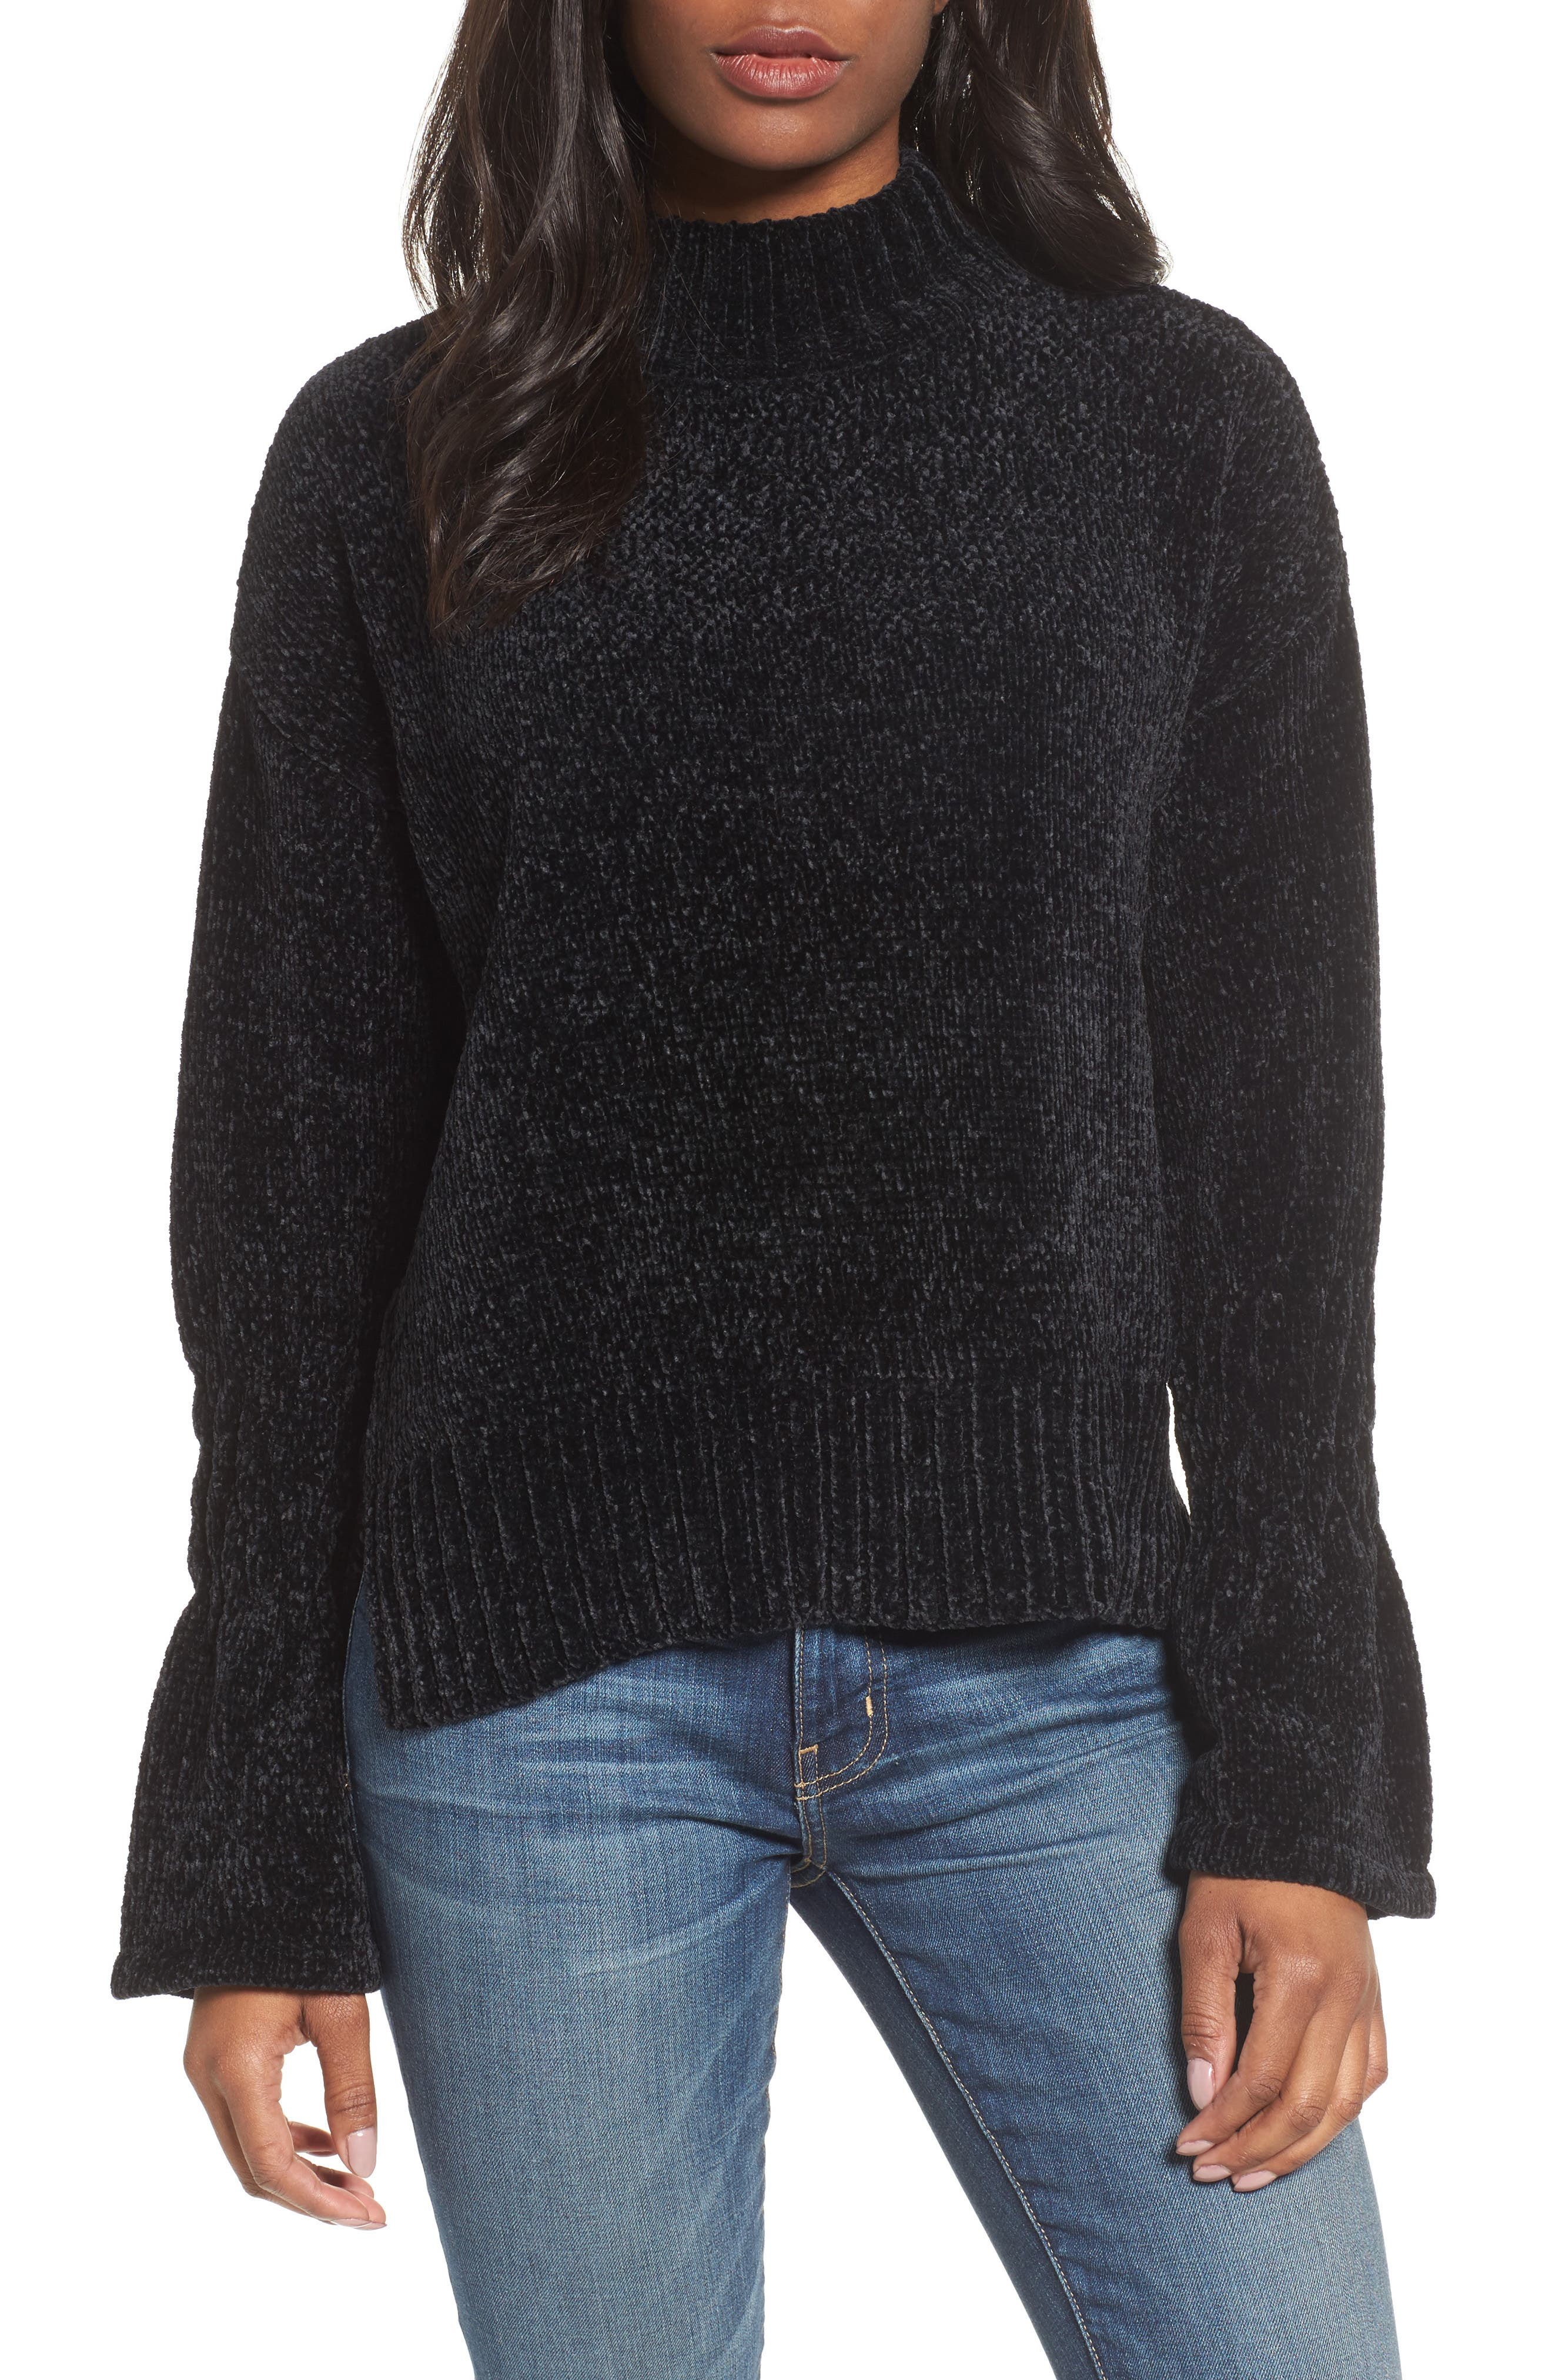 Bell Cuff Sweater,                             Main thumbnail 1, color,                             001